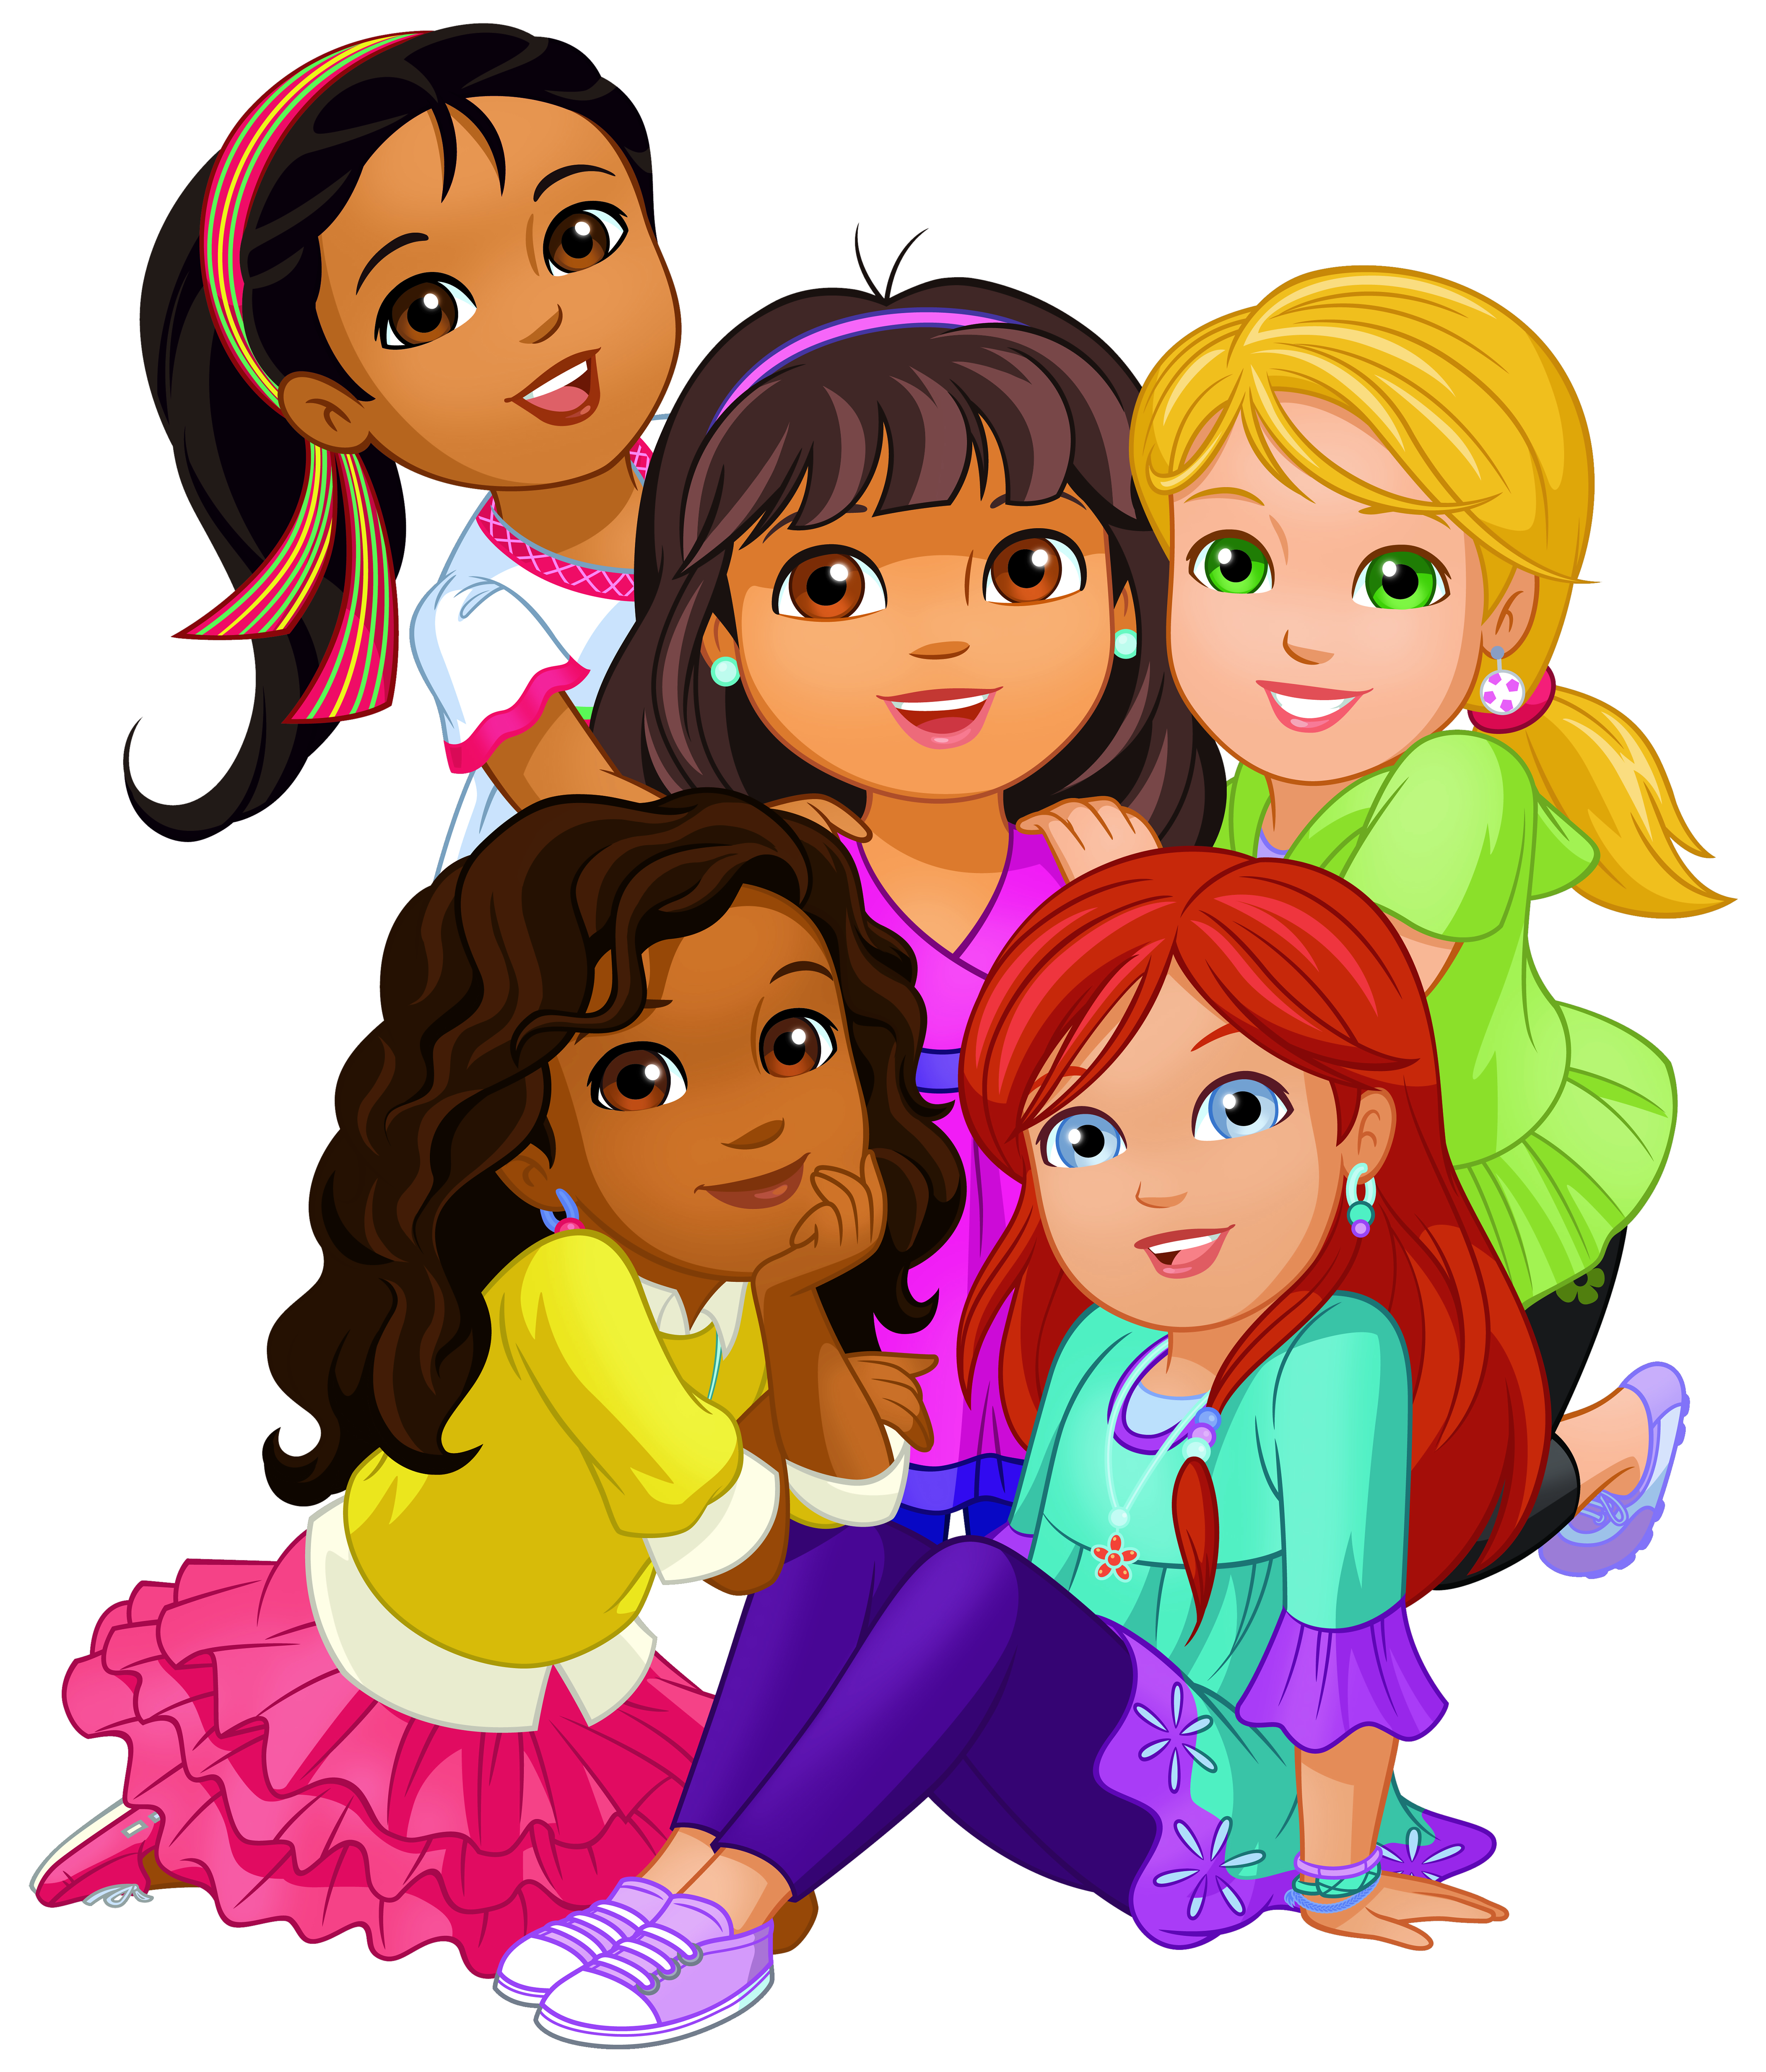 Dora and friends png. Friend clipart animated